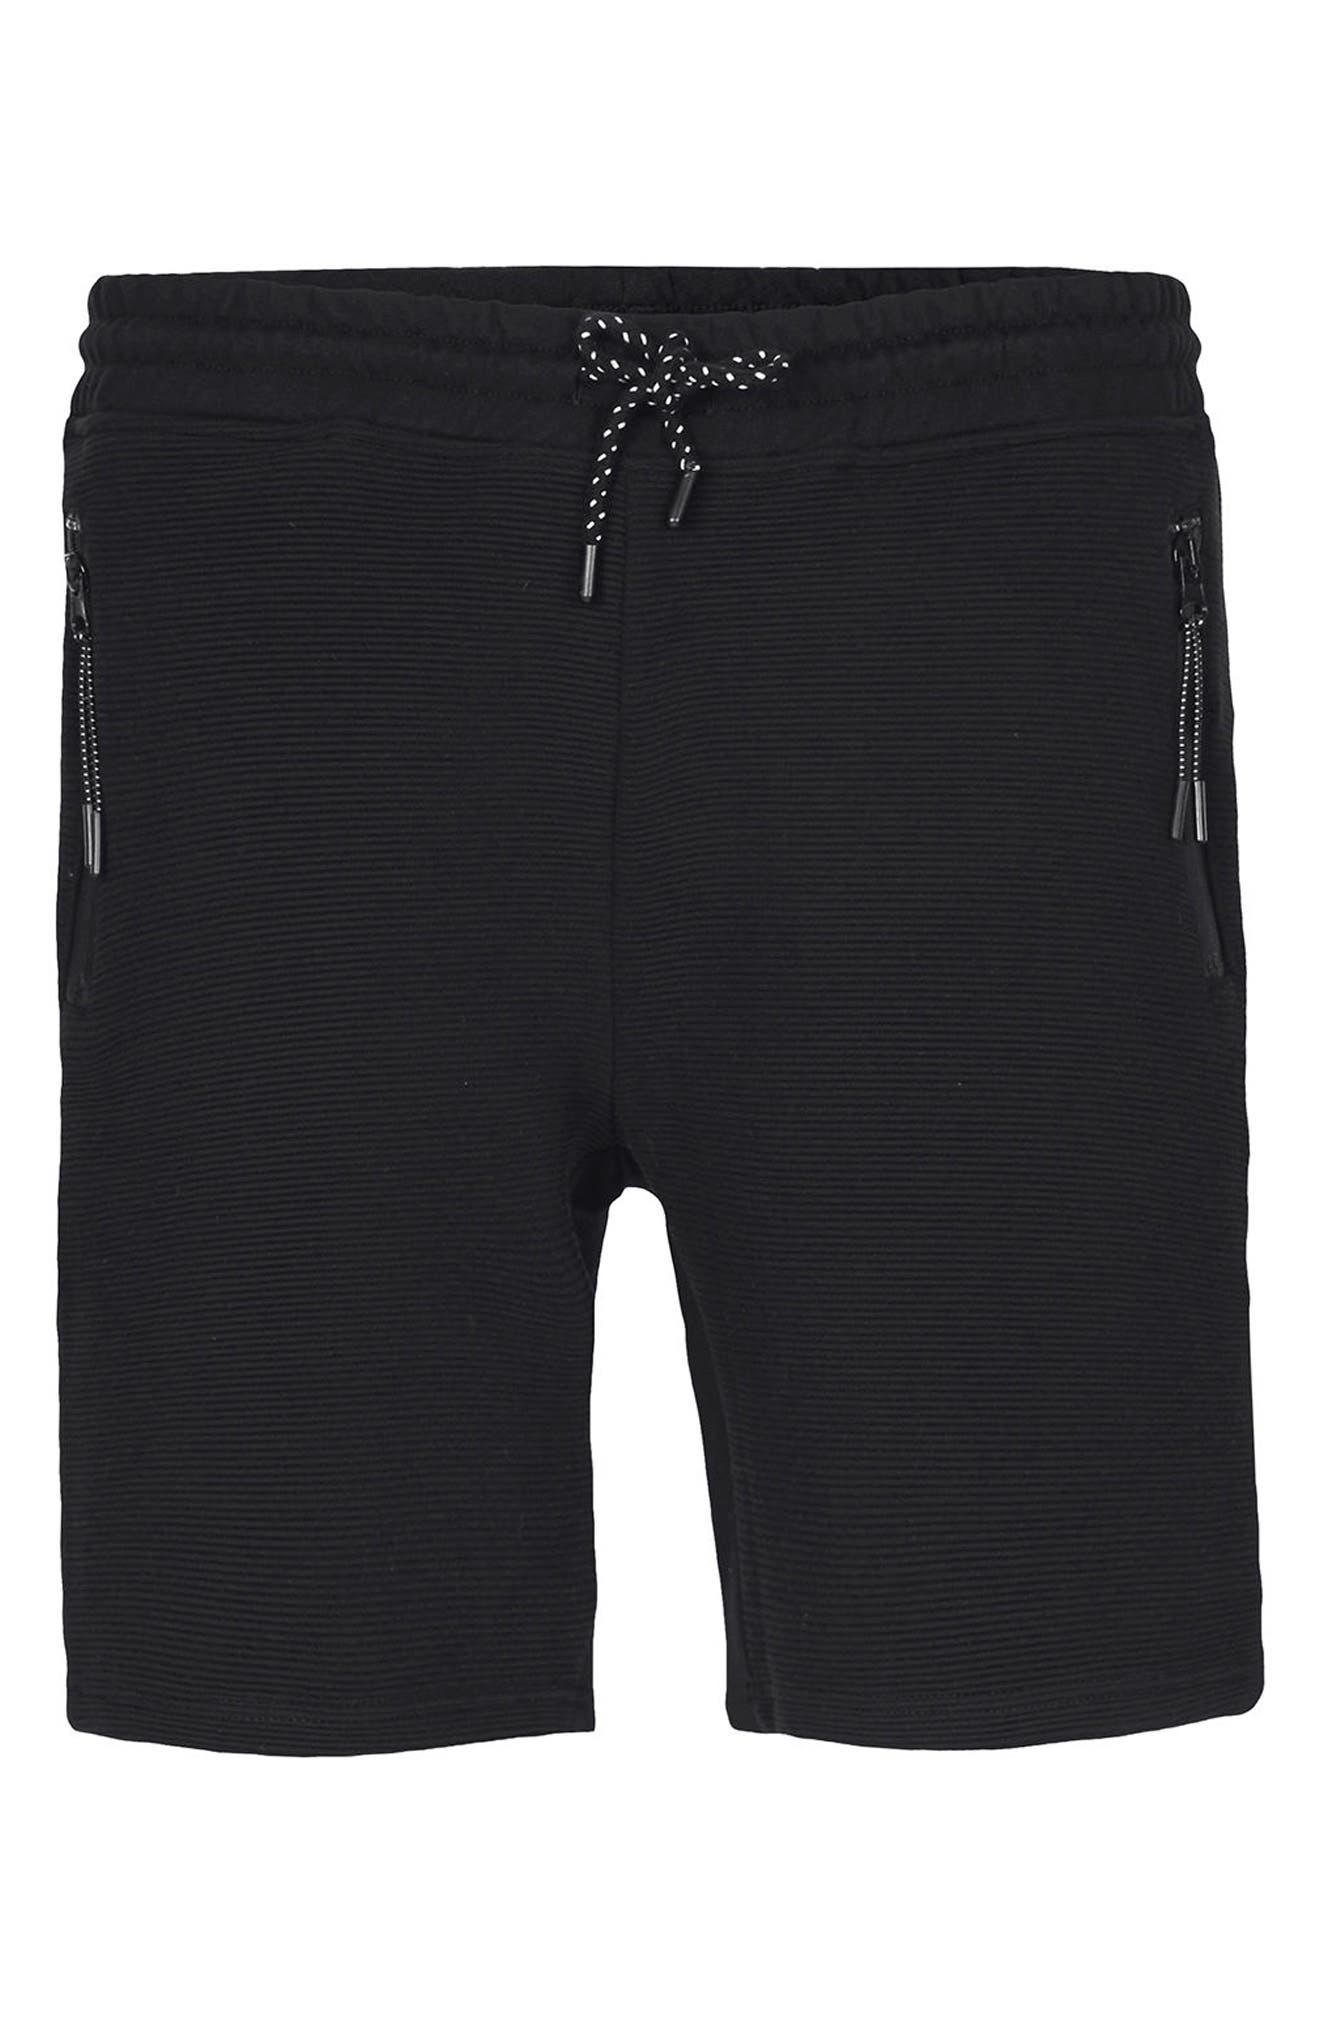 Textured Jersey Shorts,                             Alternate thumbnail 5, color,                             Black